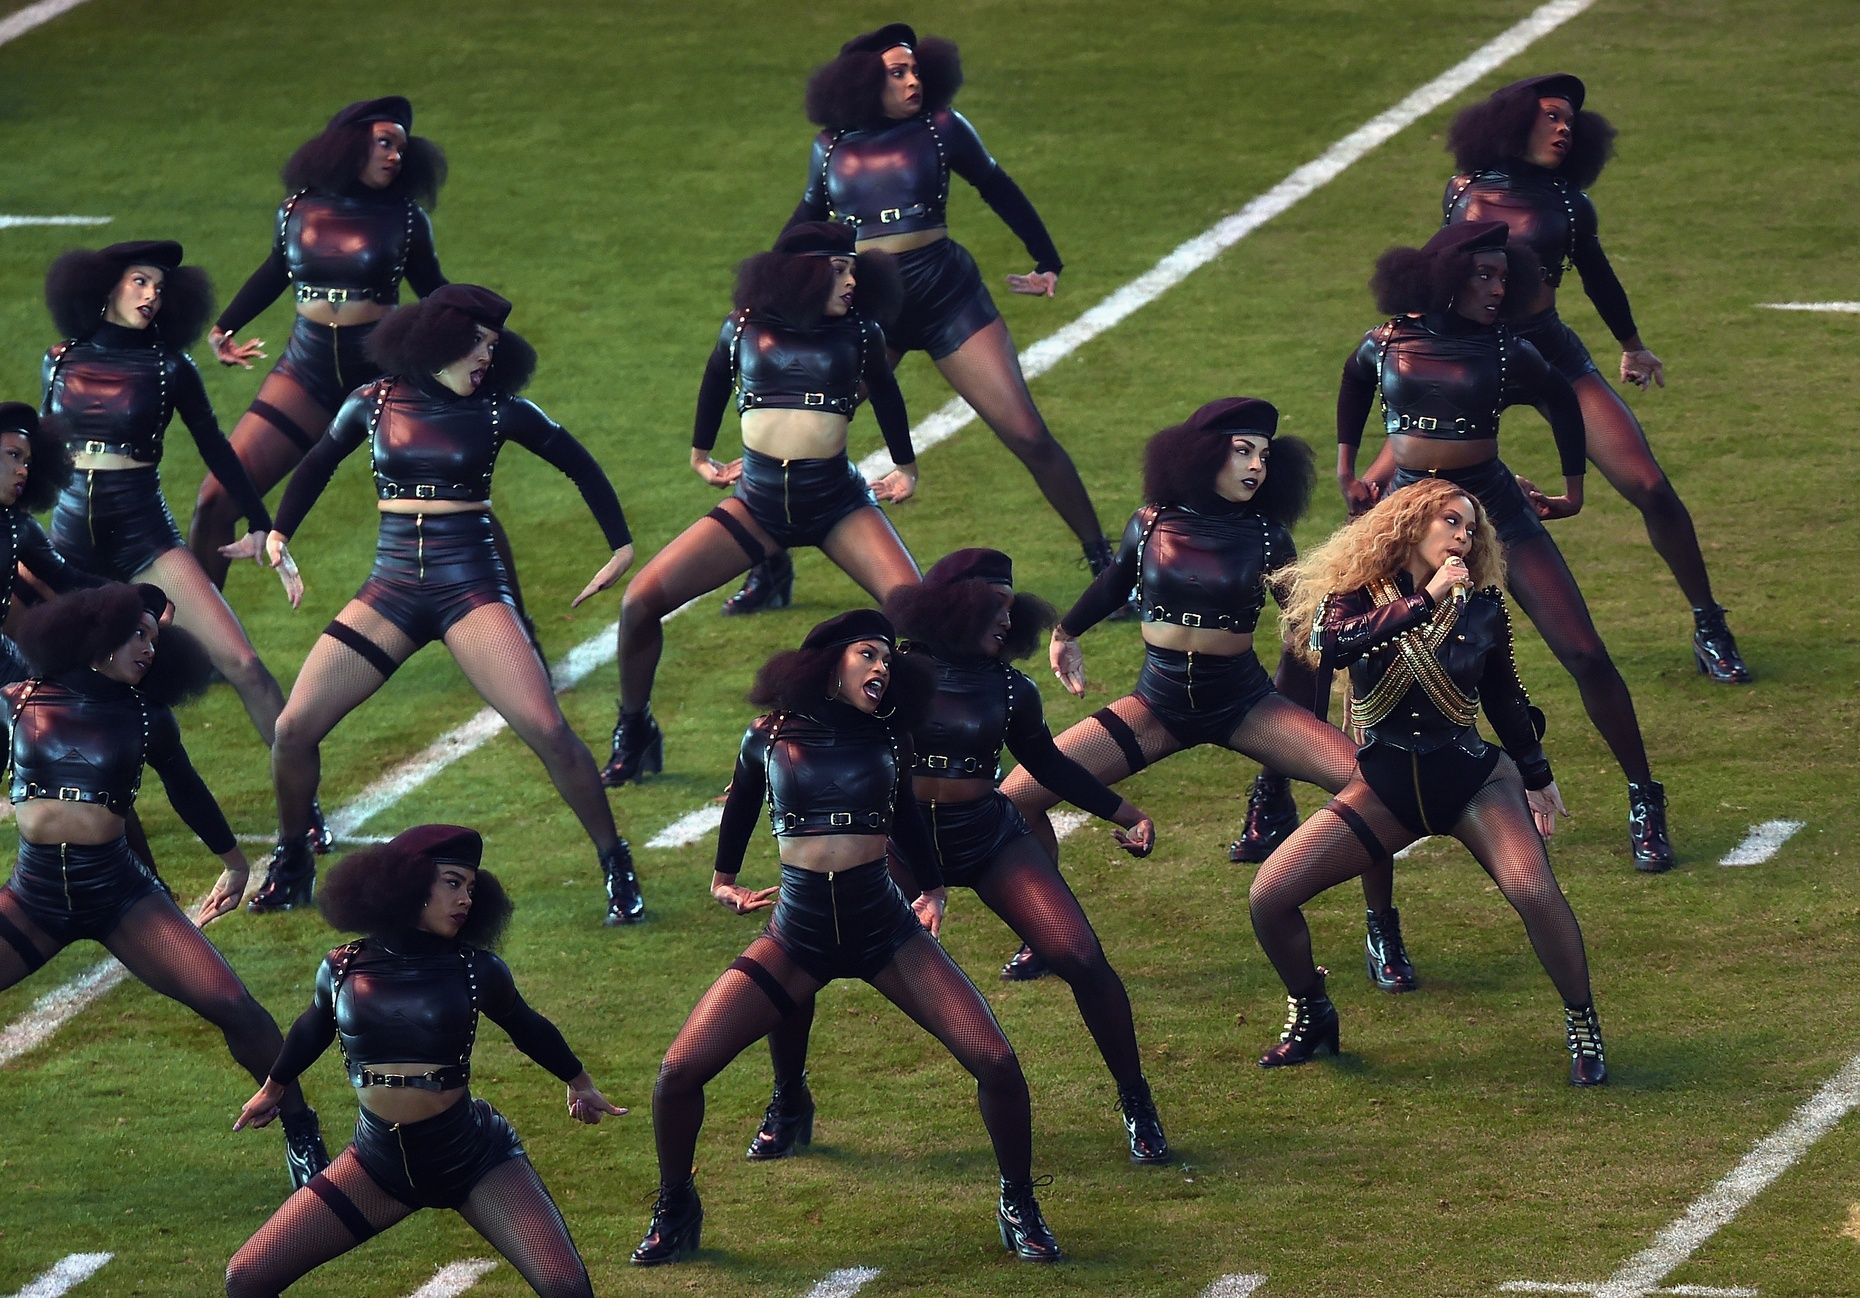 beyonce-formation-super-bowl-black-protest-music-2016-04-26